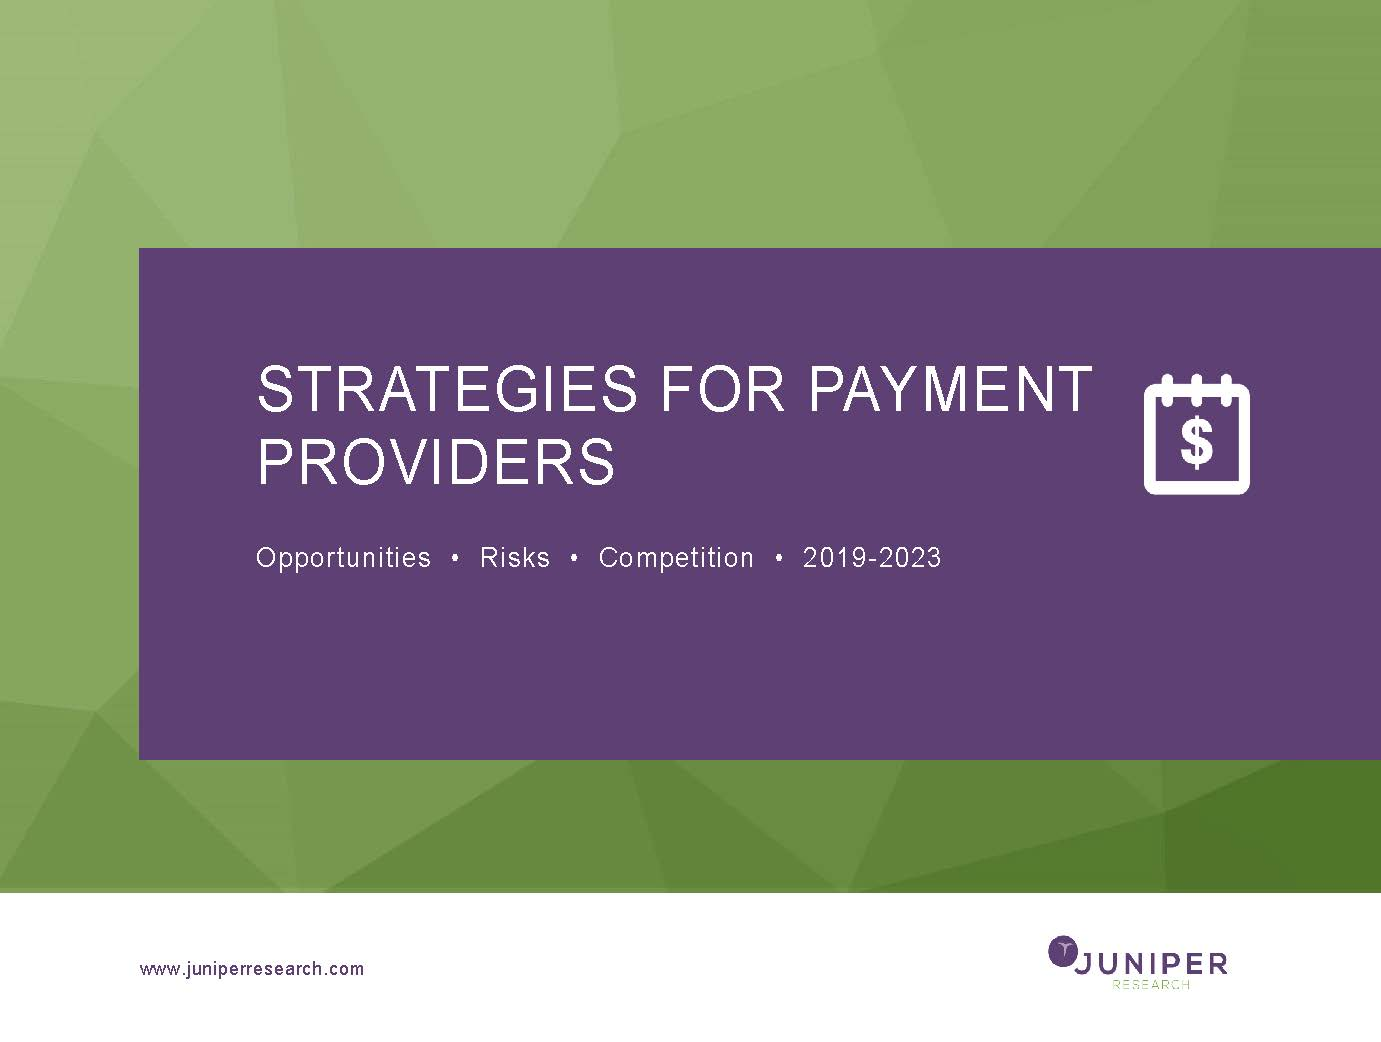 Strategies for Payment Providers: Opportunities, Risks & Competition 2019-2023